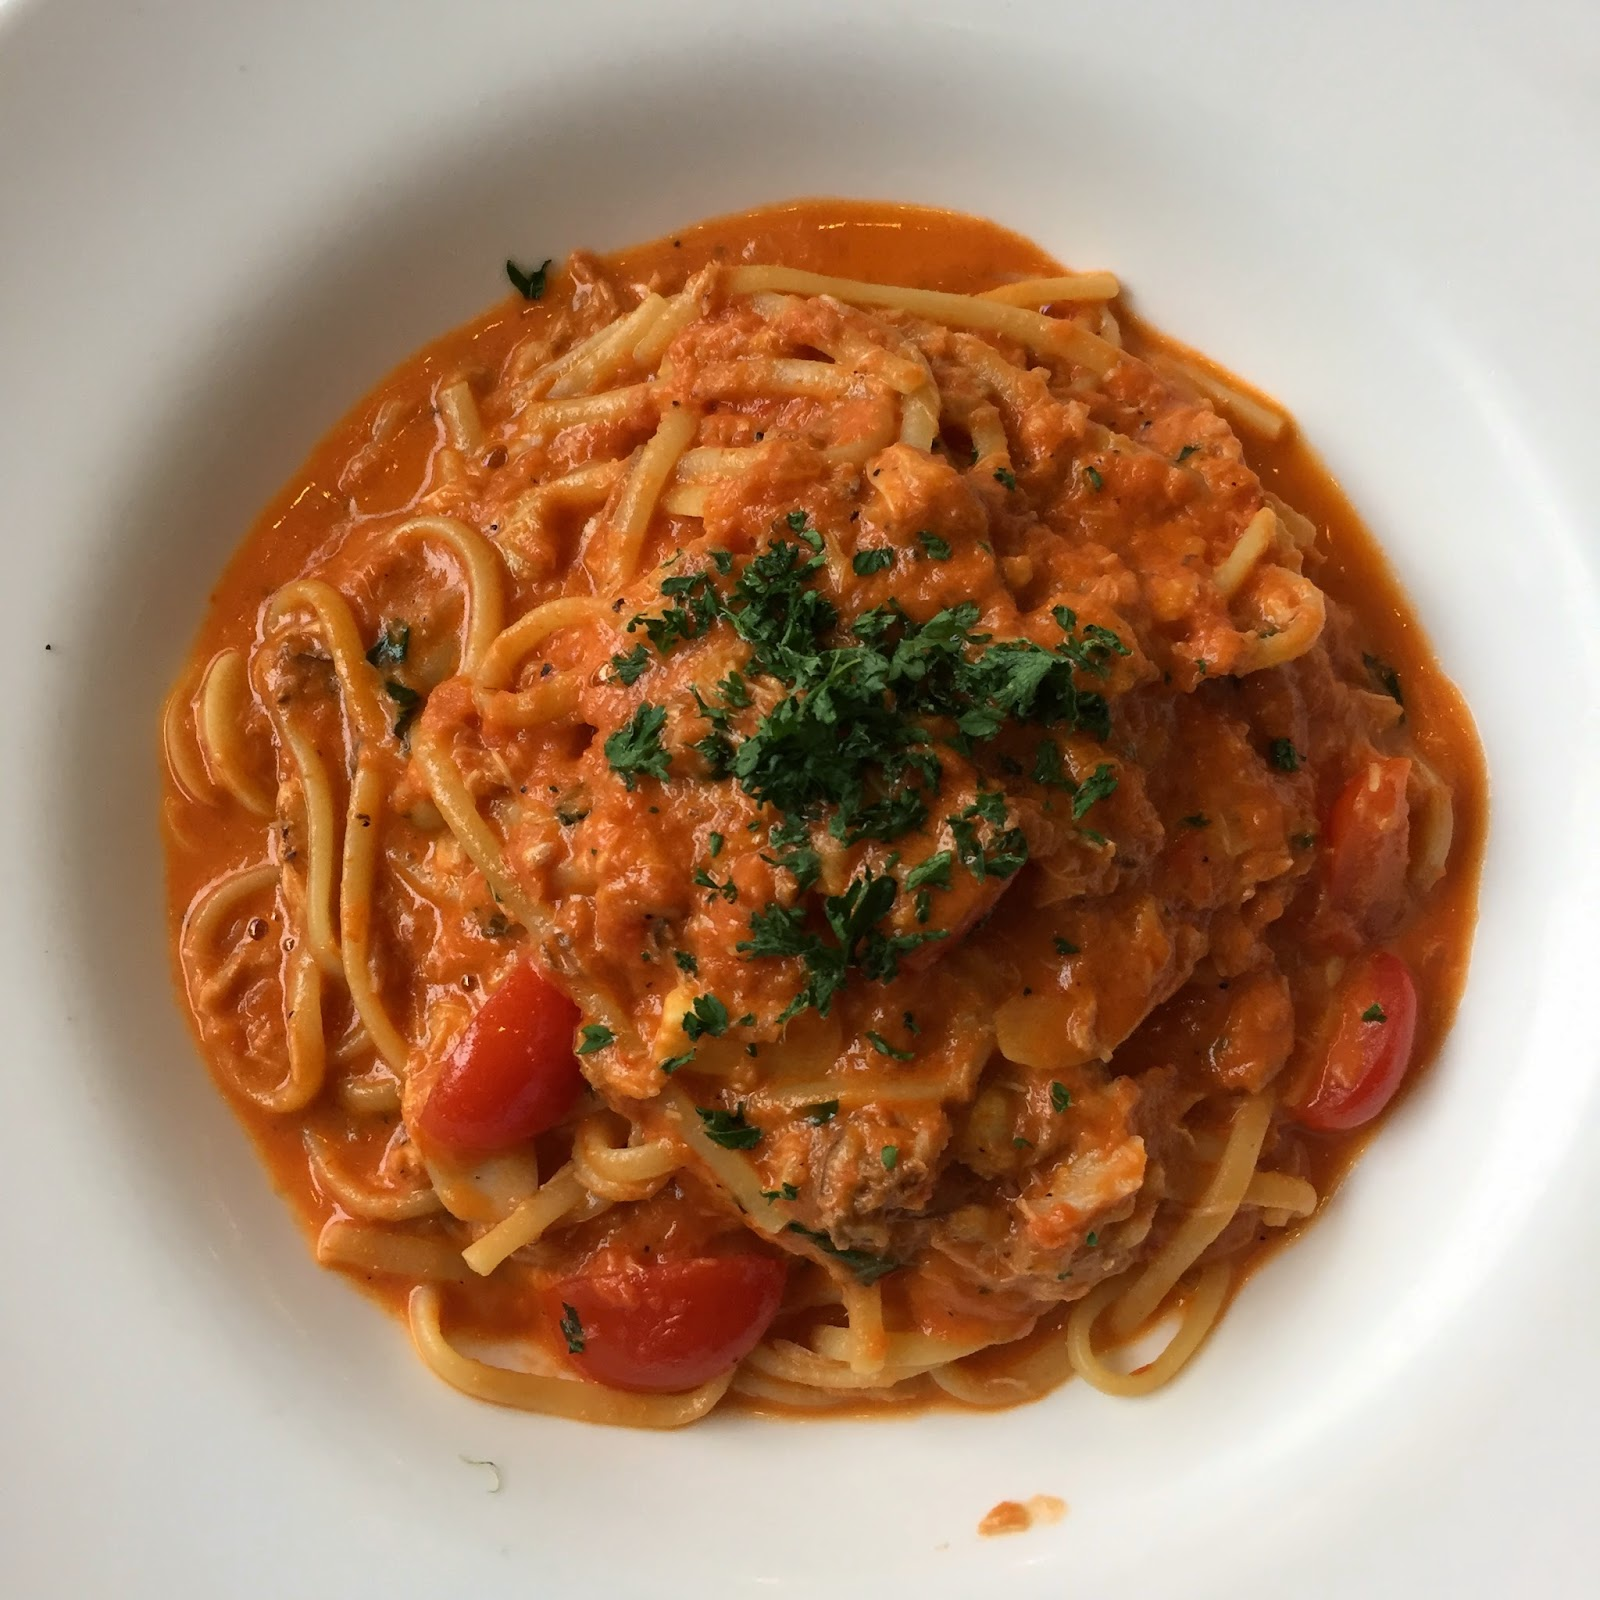 cherpopiah Linguine Pasta served with Crab Meat in Tomato Cream sauce and Basil la nonna